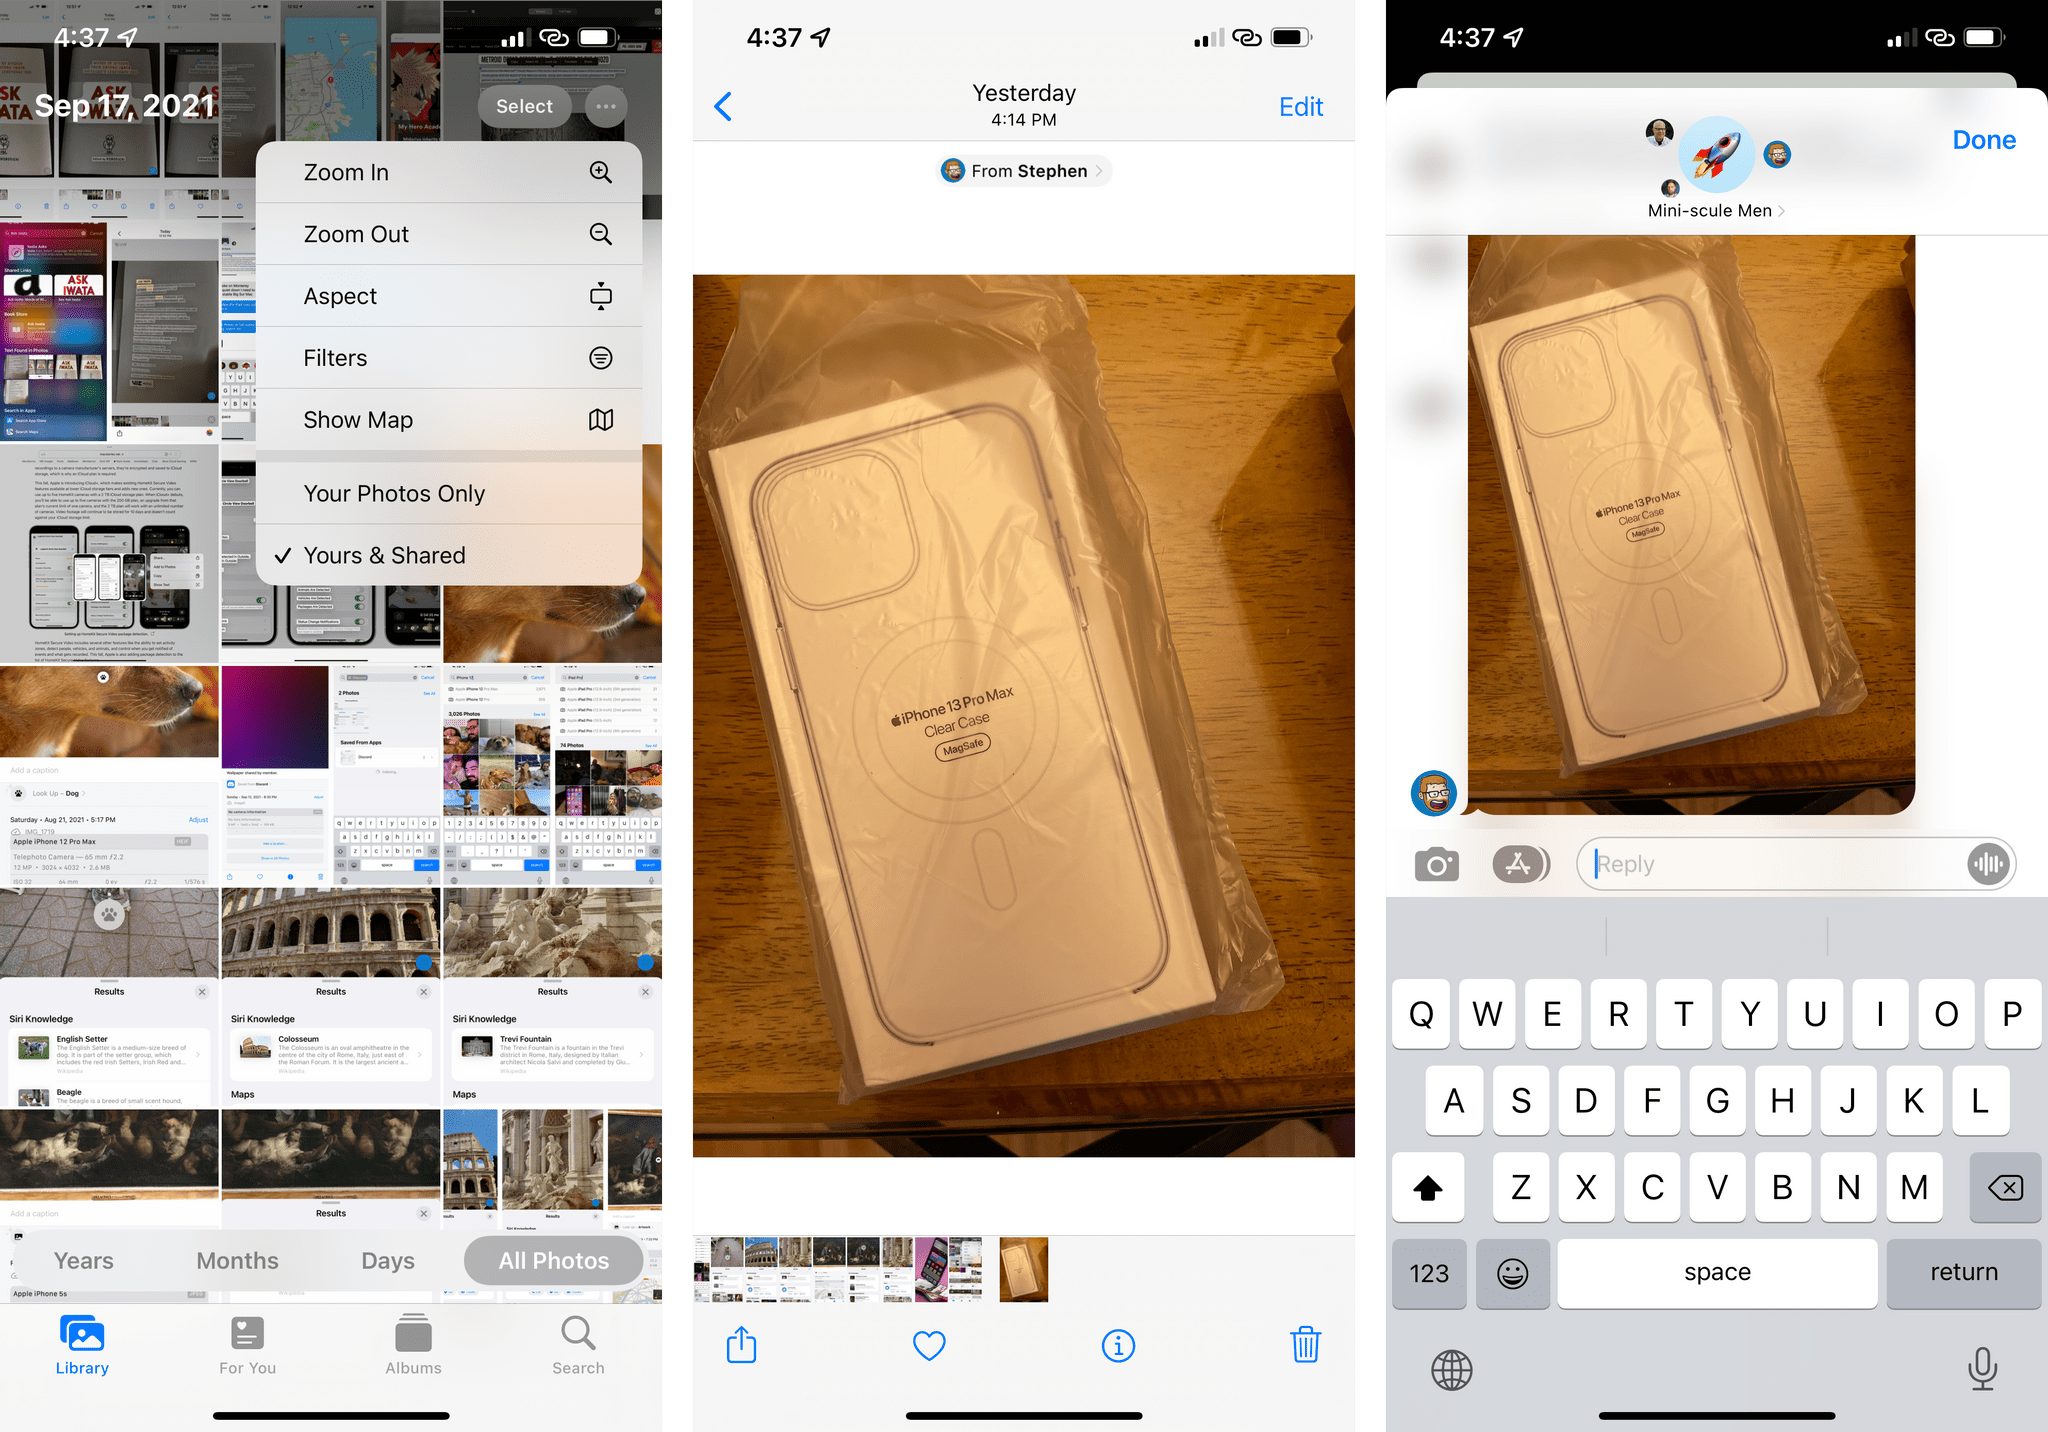 You can view images Shared with You in the Photos app, but you can also filter those out.